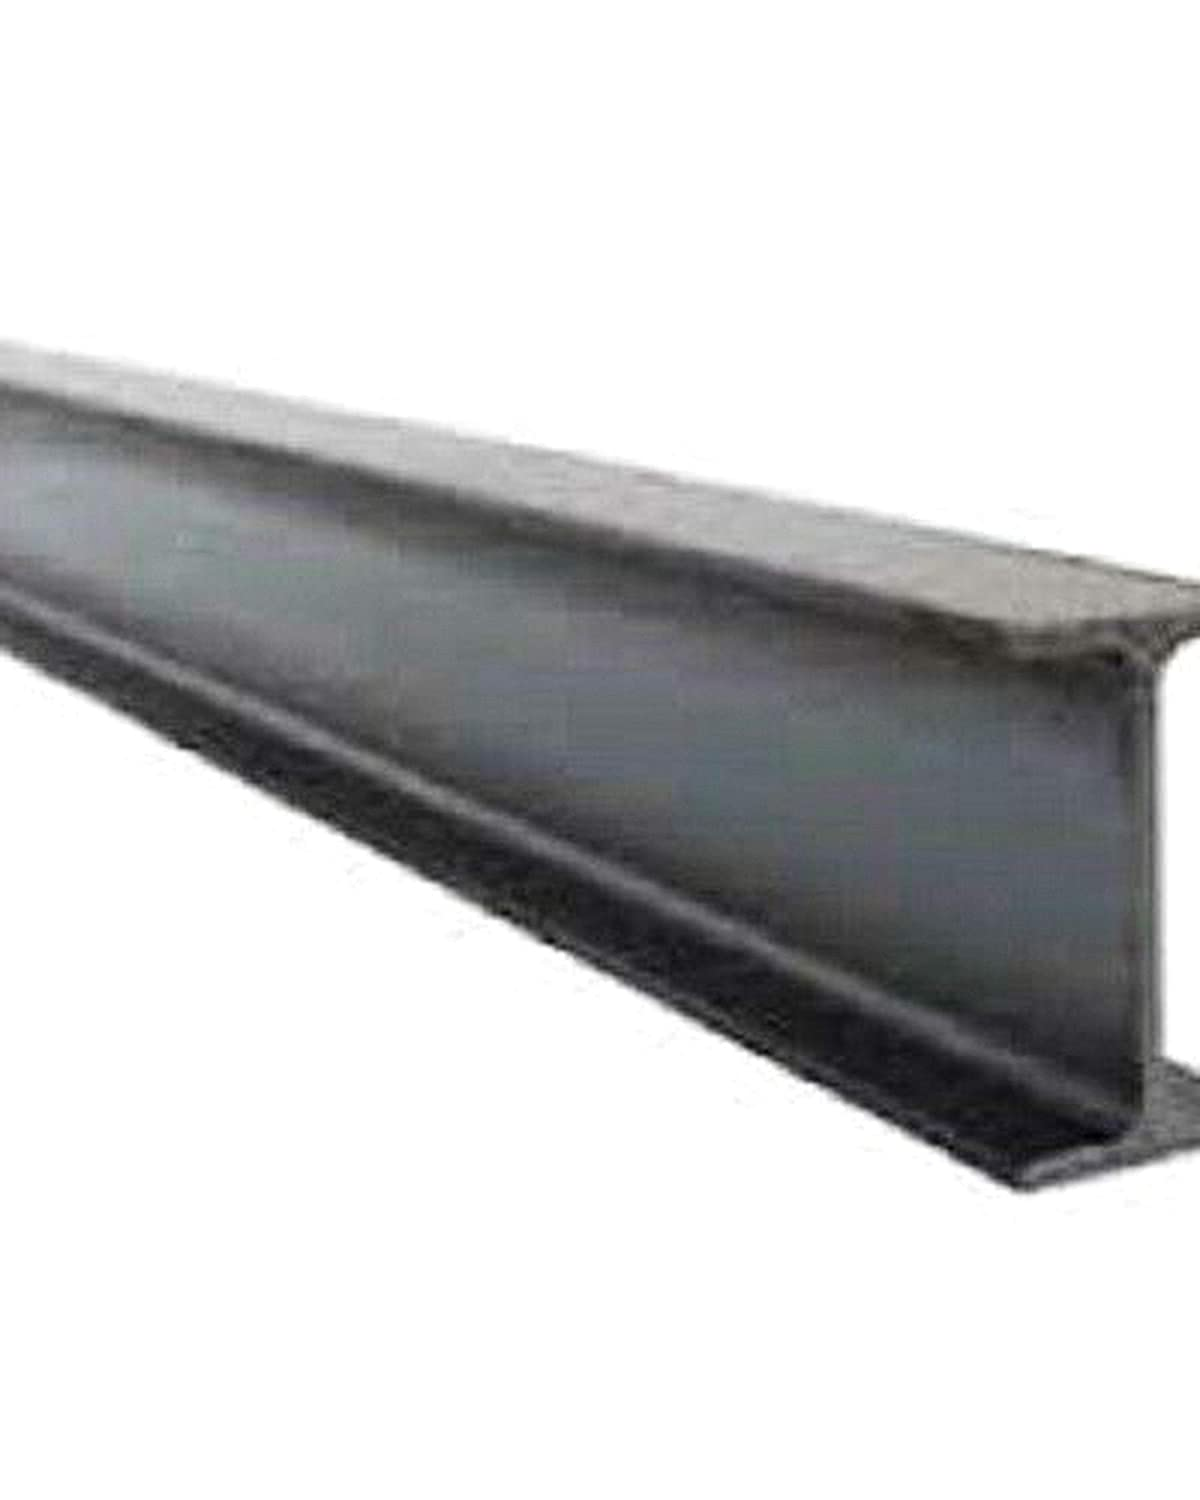 New Metal Grade A992 Hot Rolled Steel 12# - W6 ft x Soldering Ranking TOP17 36